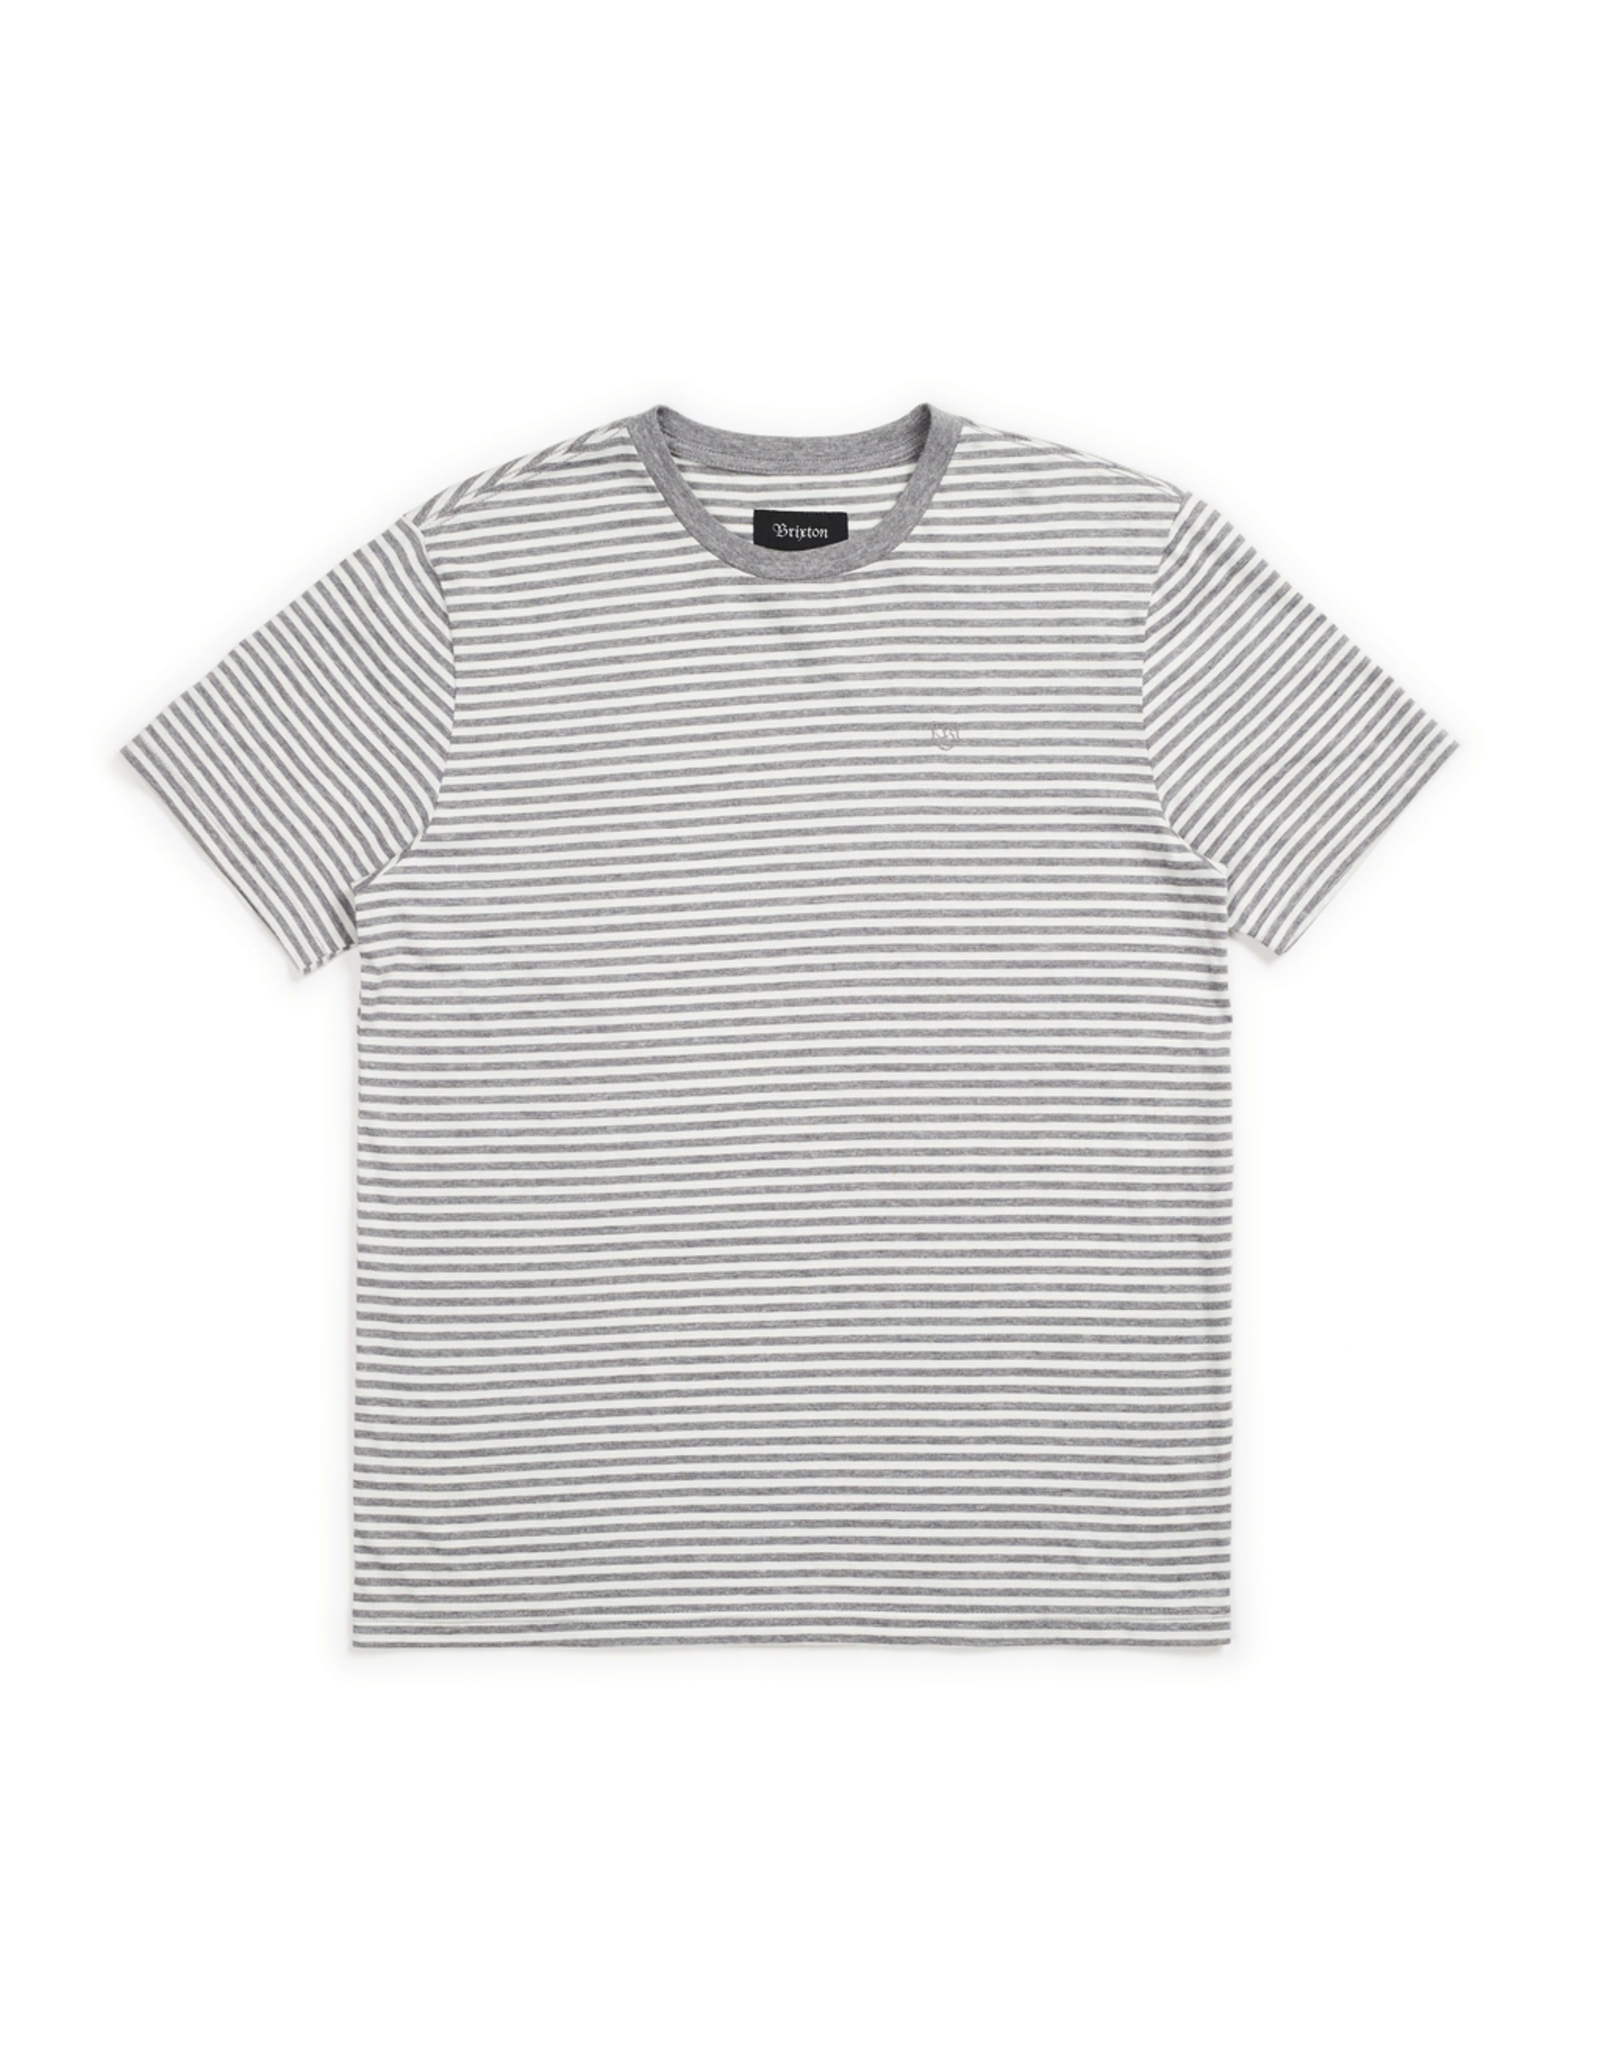 BRIXTON BRIXTON PABLO S/S KNIT (HEATHER GREY)